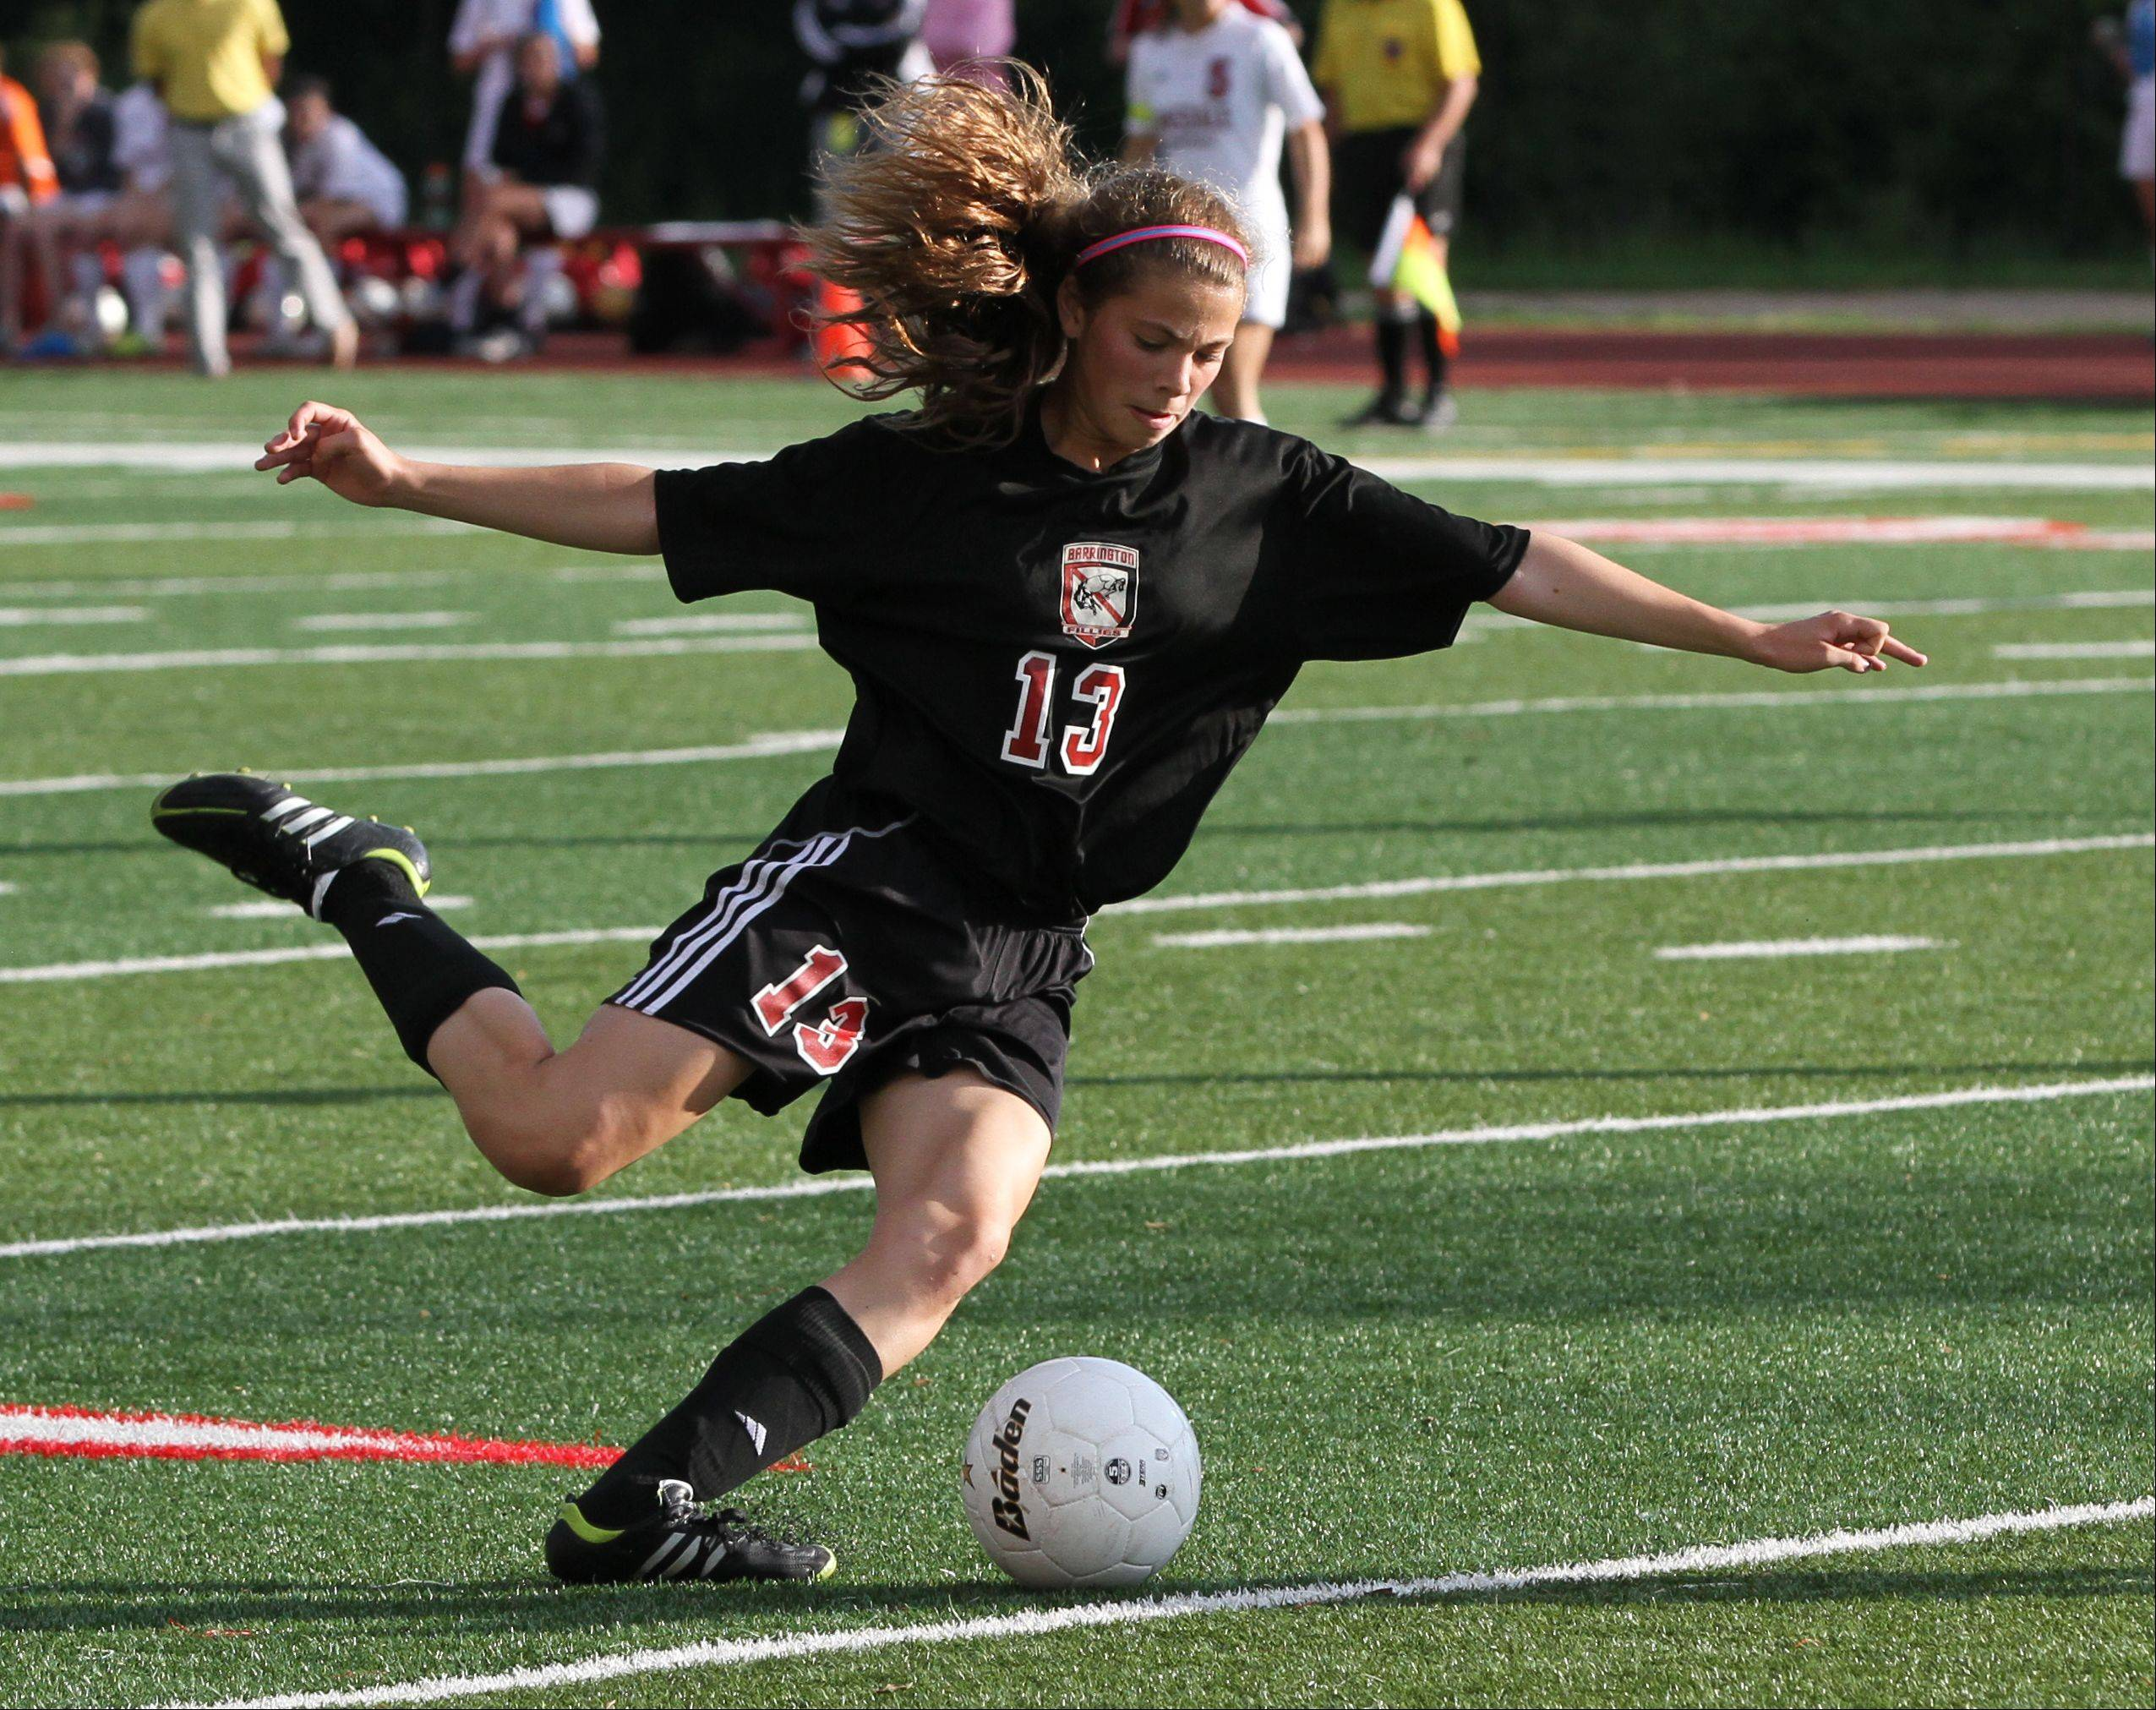 Barrington midfielder Kelsey Muniz kicks the ball downfield in the Class 3A girls soccer state semifinals against Hinsdale Central on Friday at North Central College.